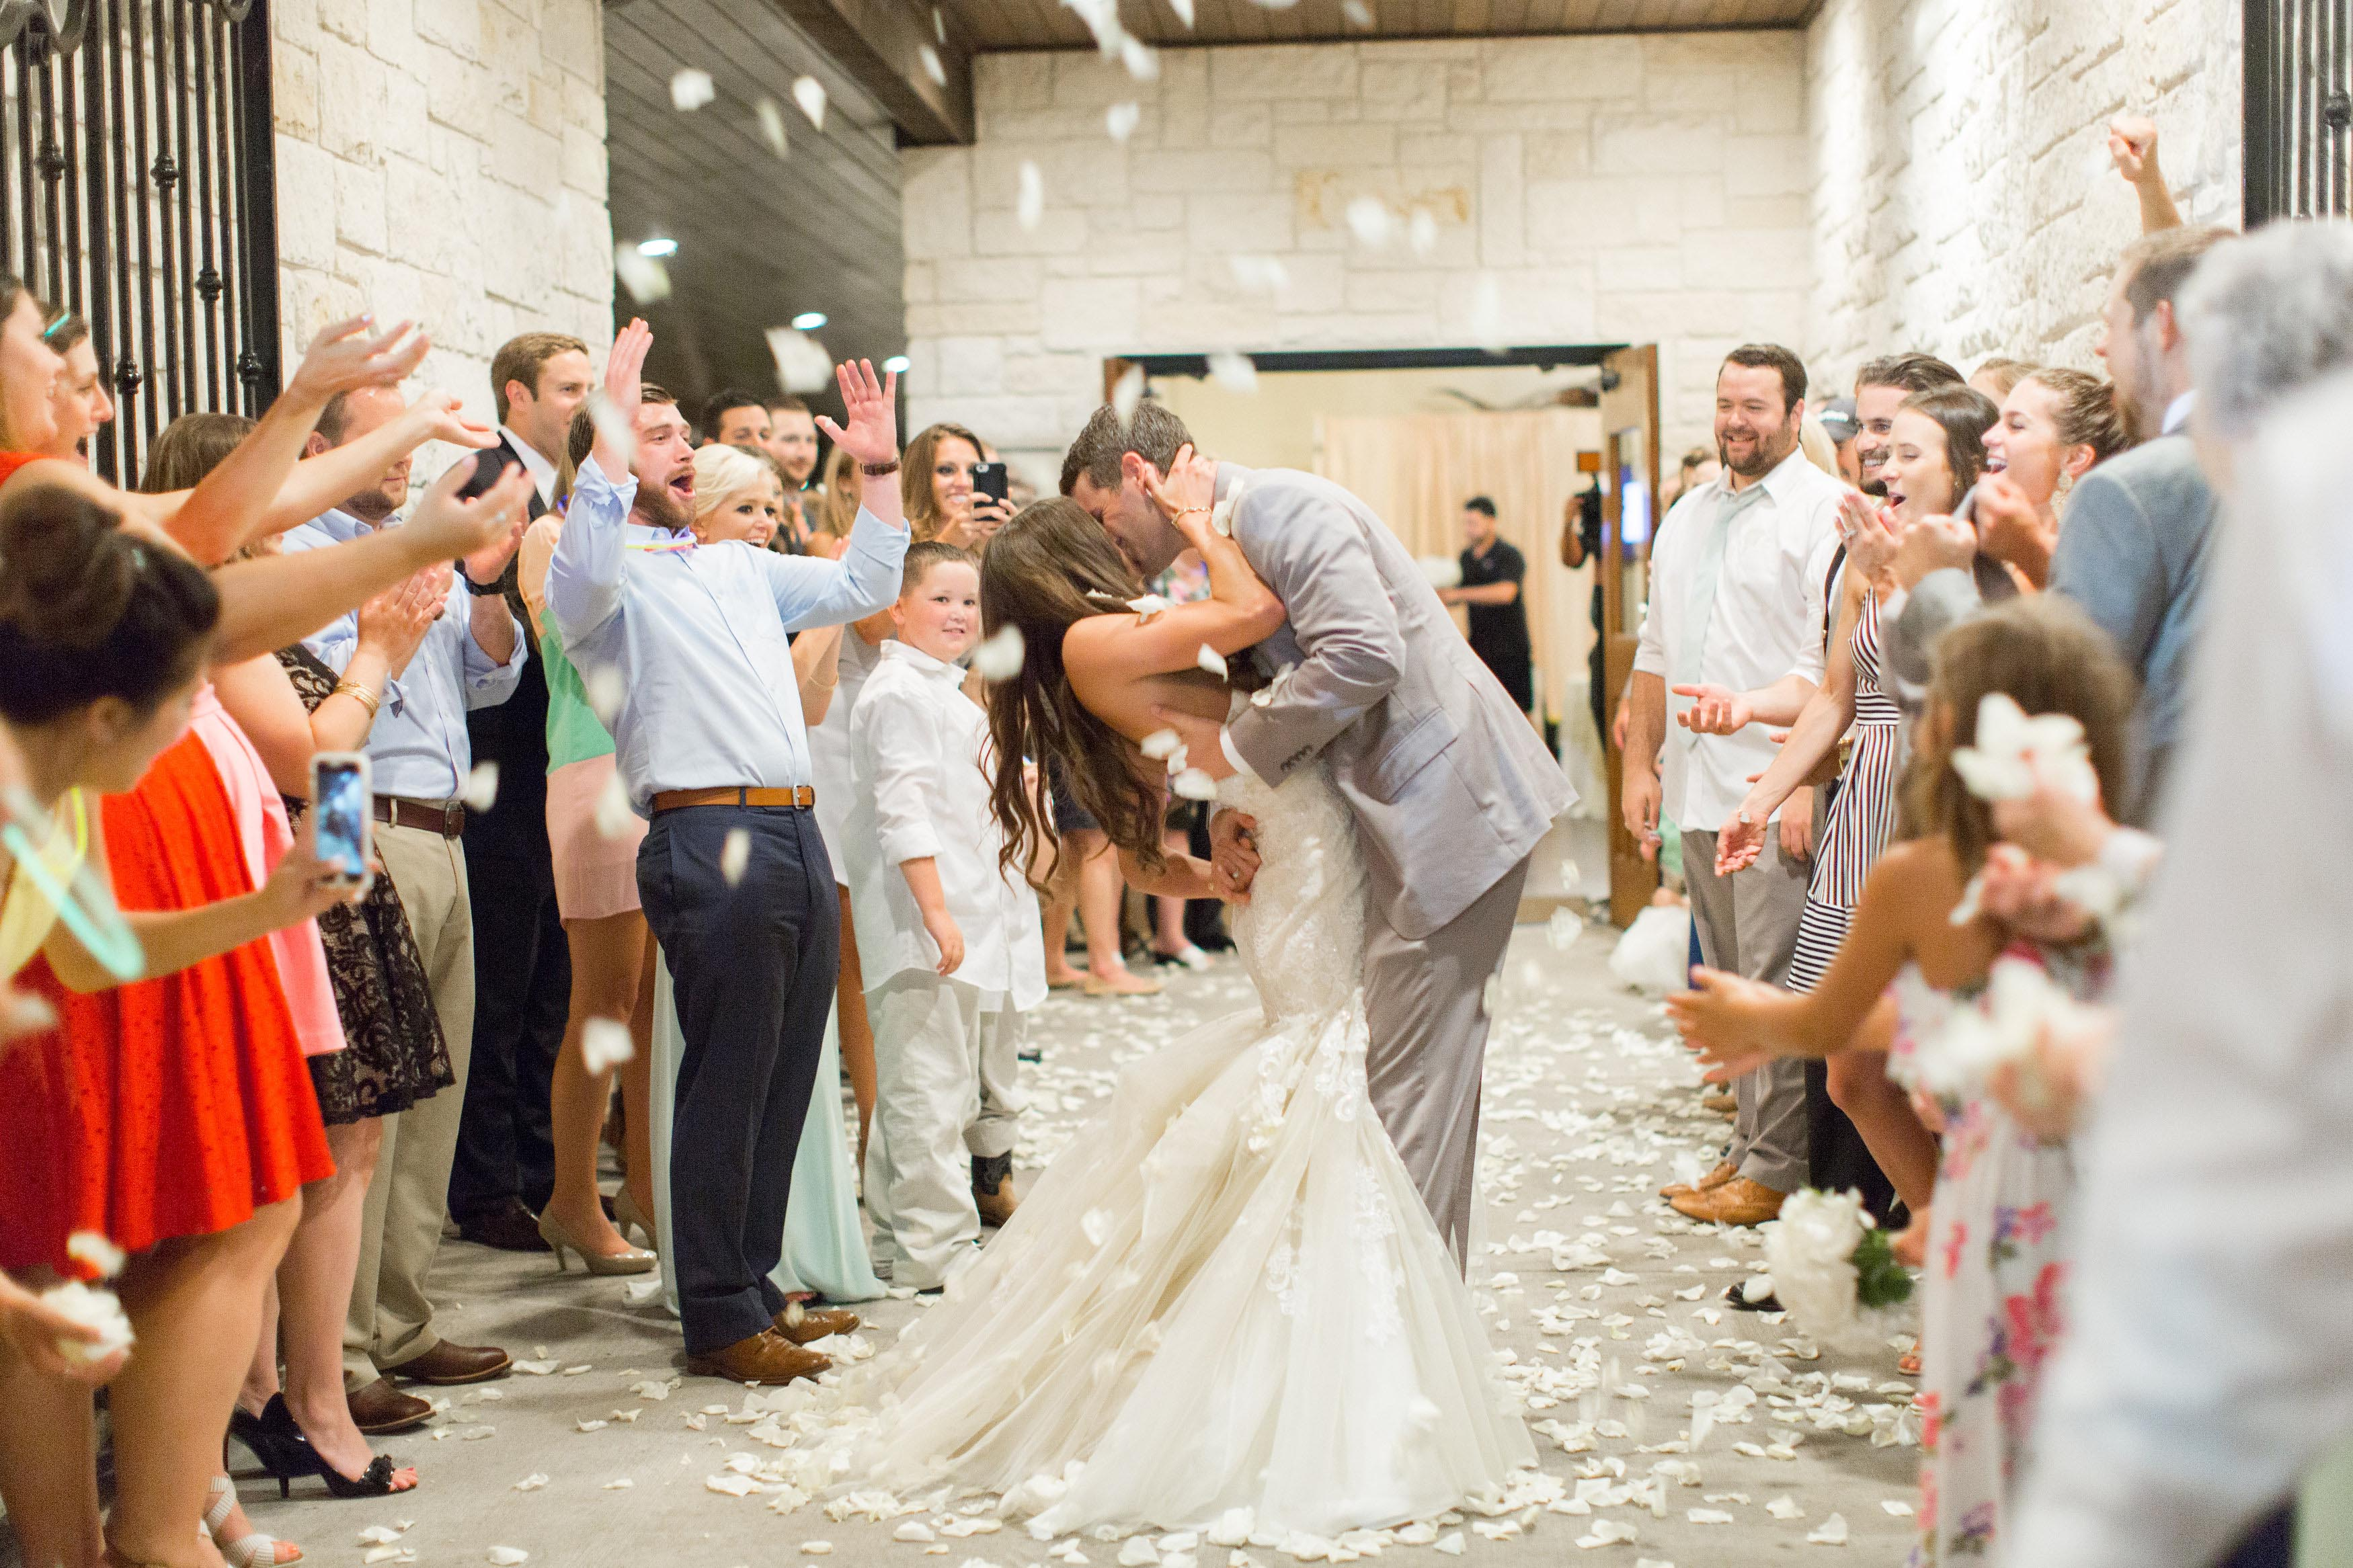 photos-of-wedding-departures-at-briscoe-manor-022